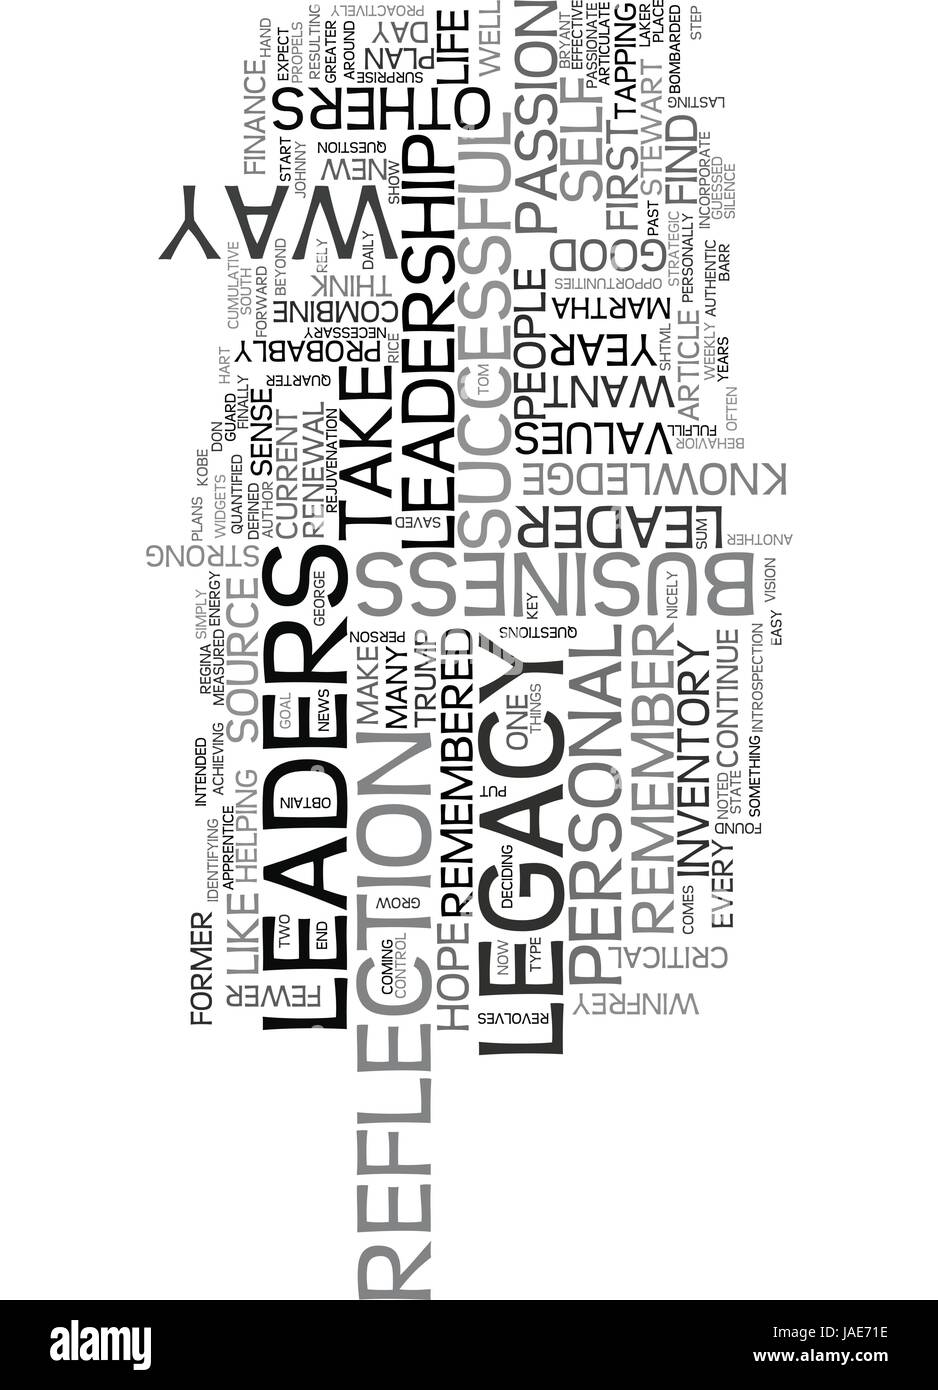 YOUR LEADERSHIP LEGACY TEXT WORD CLOUD CONCEPT - Stock Vector